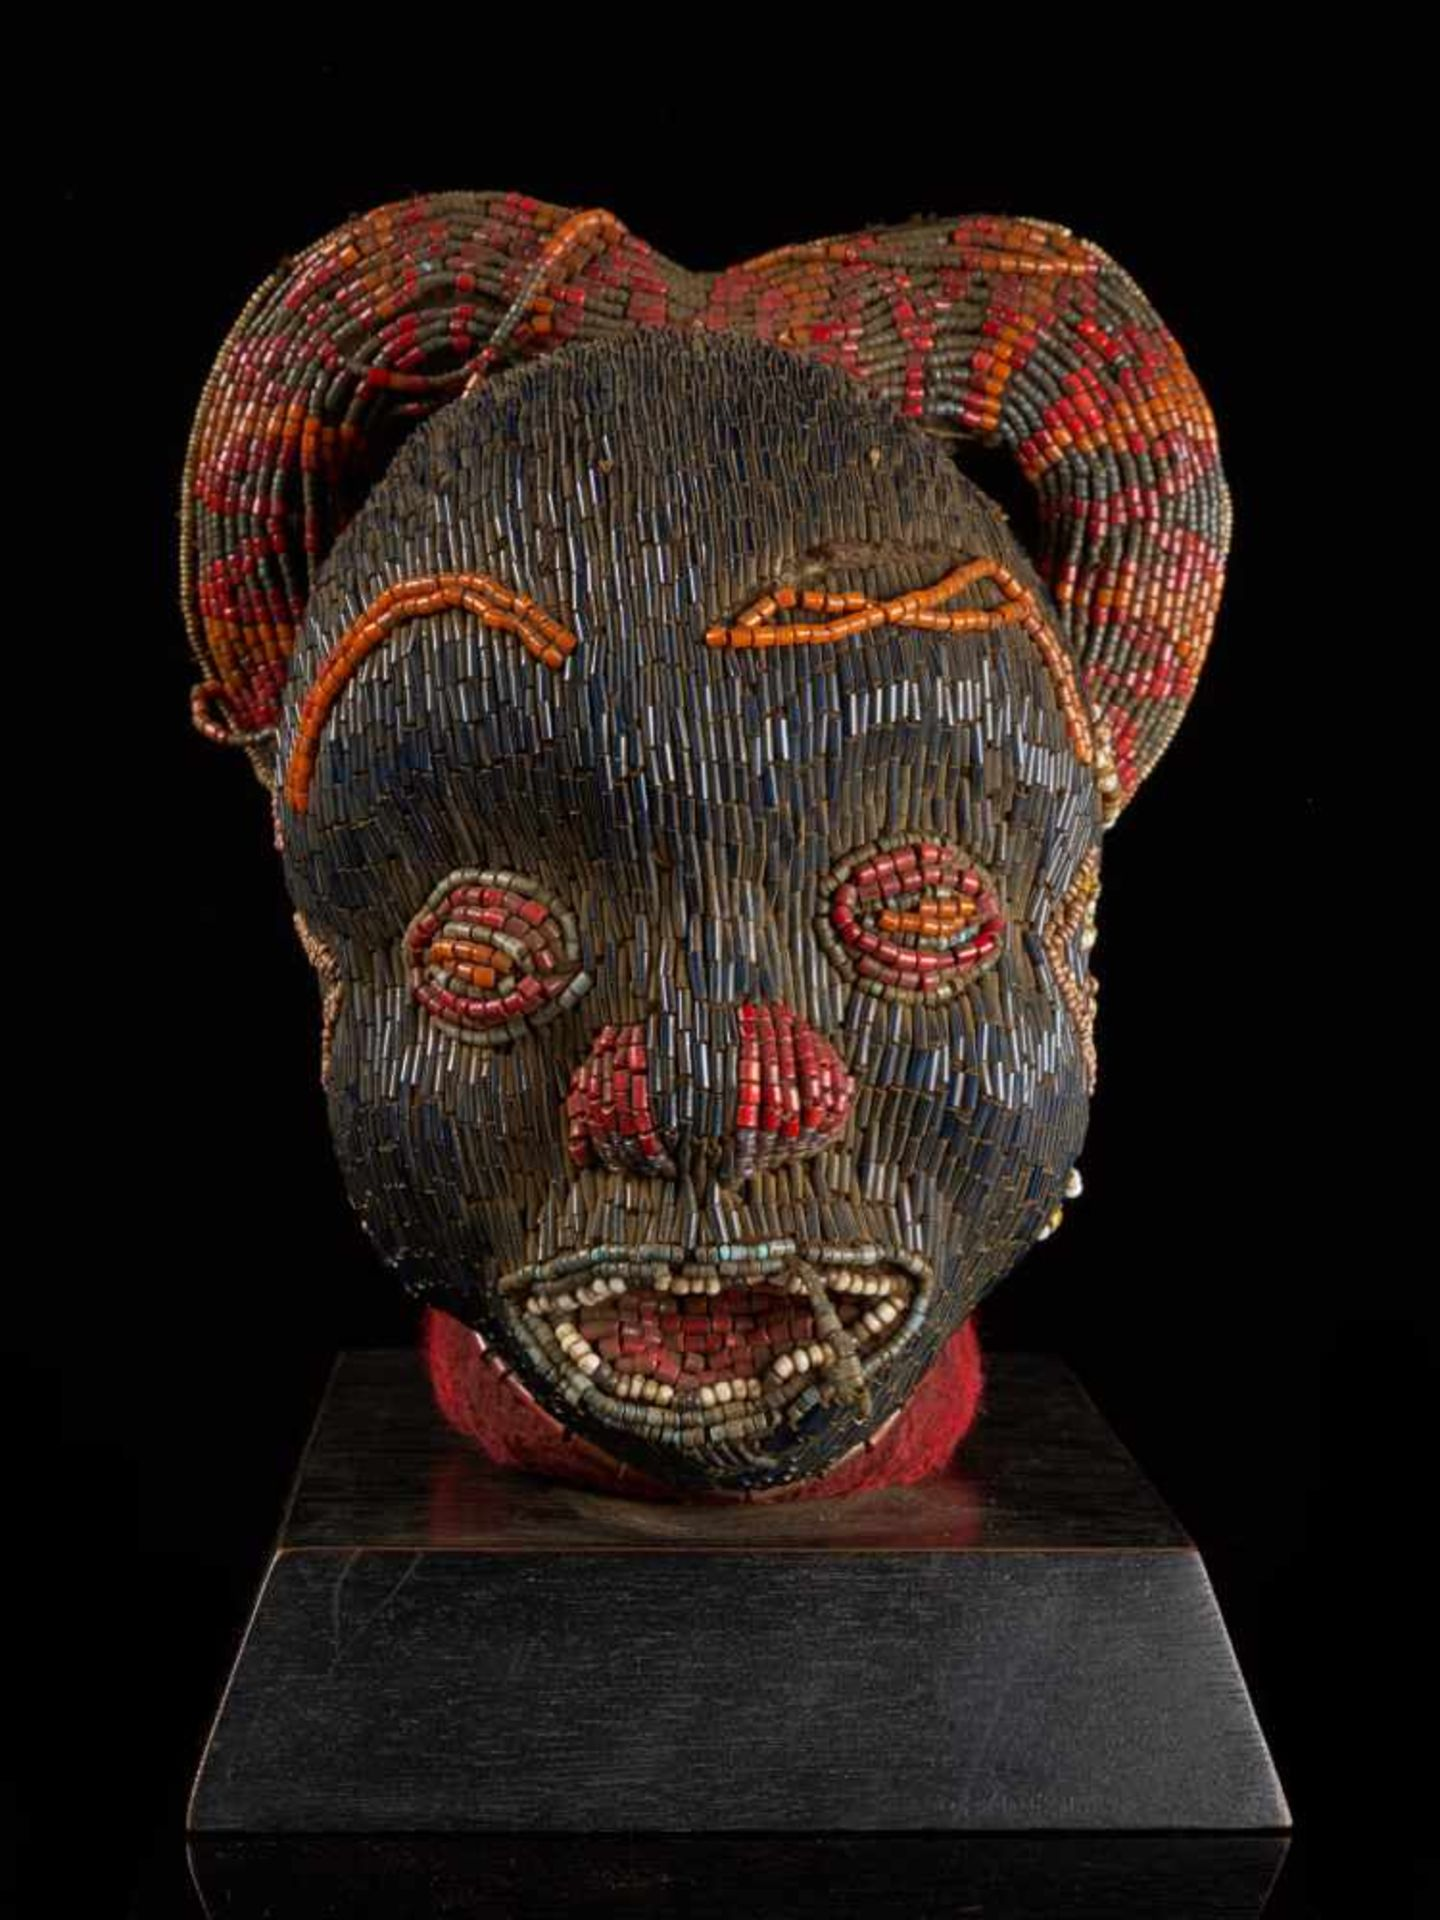 Beaded Janus Head Sculpture With Headdress - Tribal ArtThis beautiful two-faced head sculpture is - Bild 6 aus 6